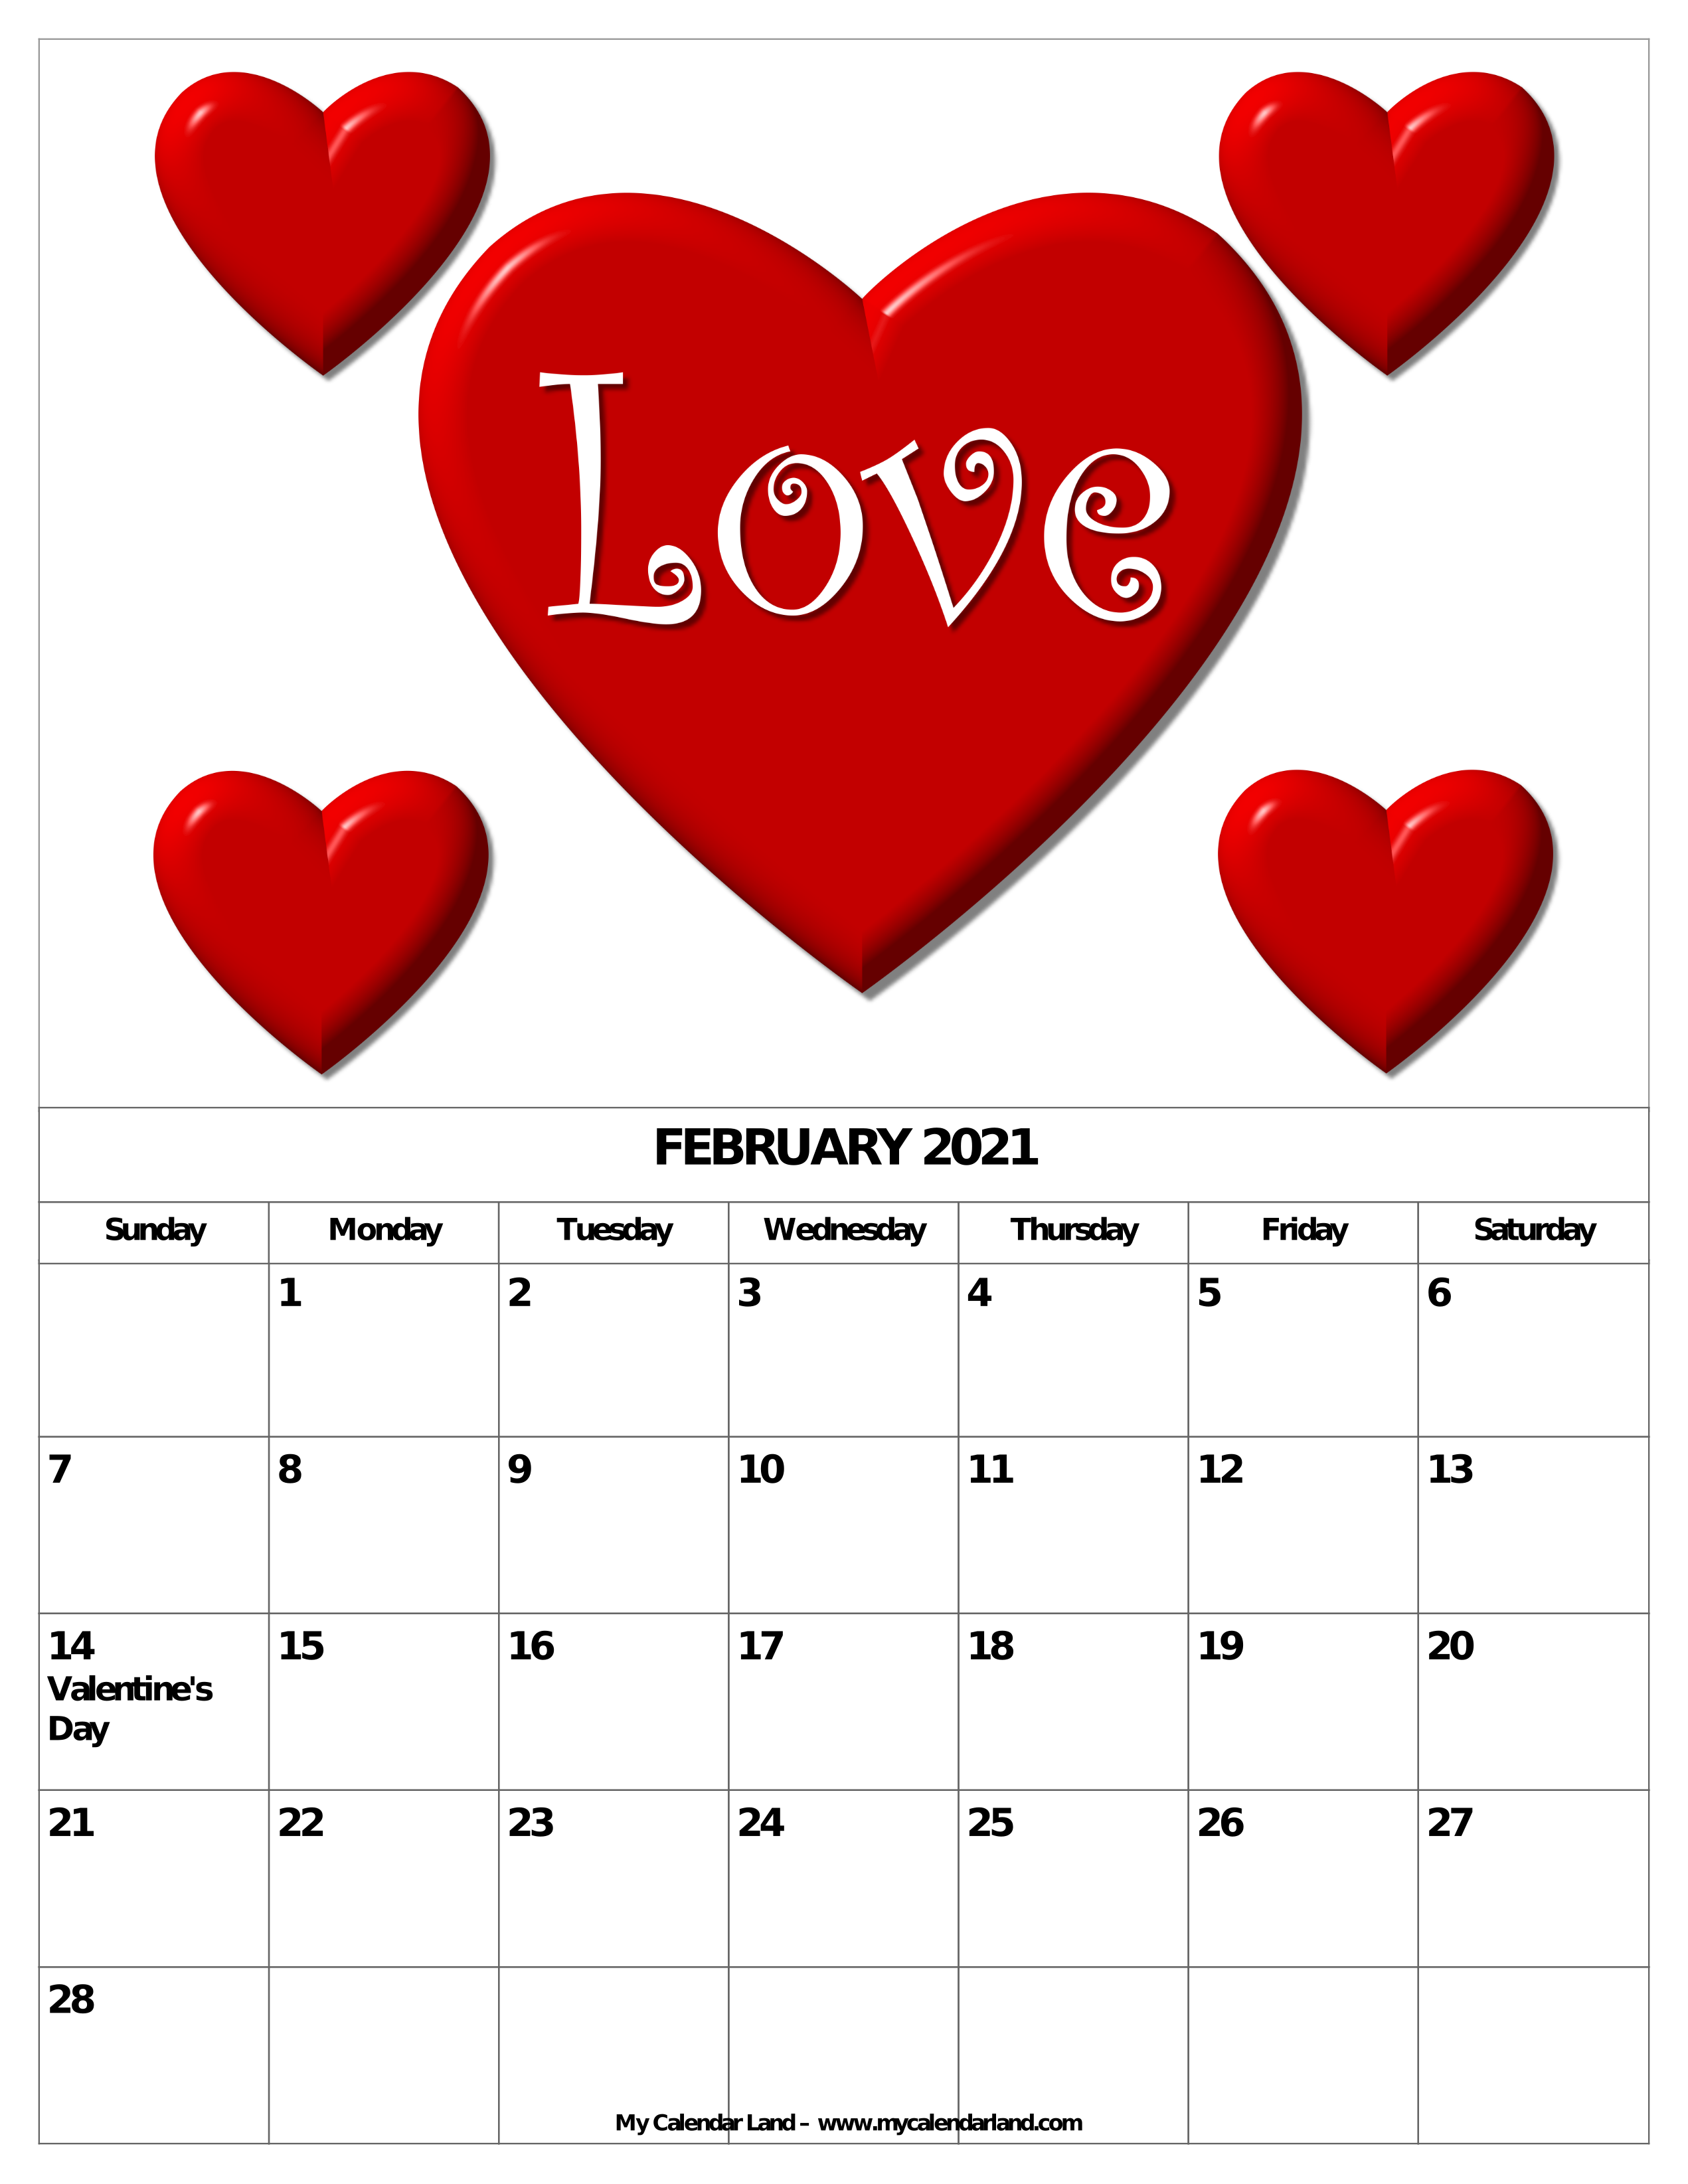 February 2021 Calendar Valentines Theme Valentine 039 S Day Or Saint Valentine 039 S Day Is Observed On February 14 Each Year